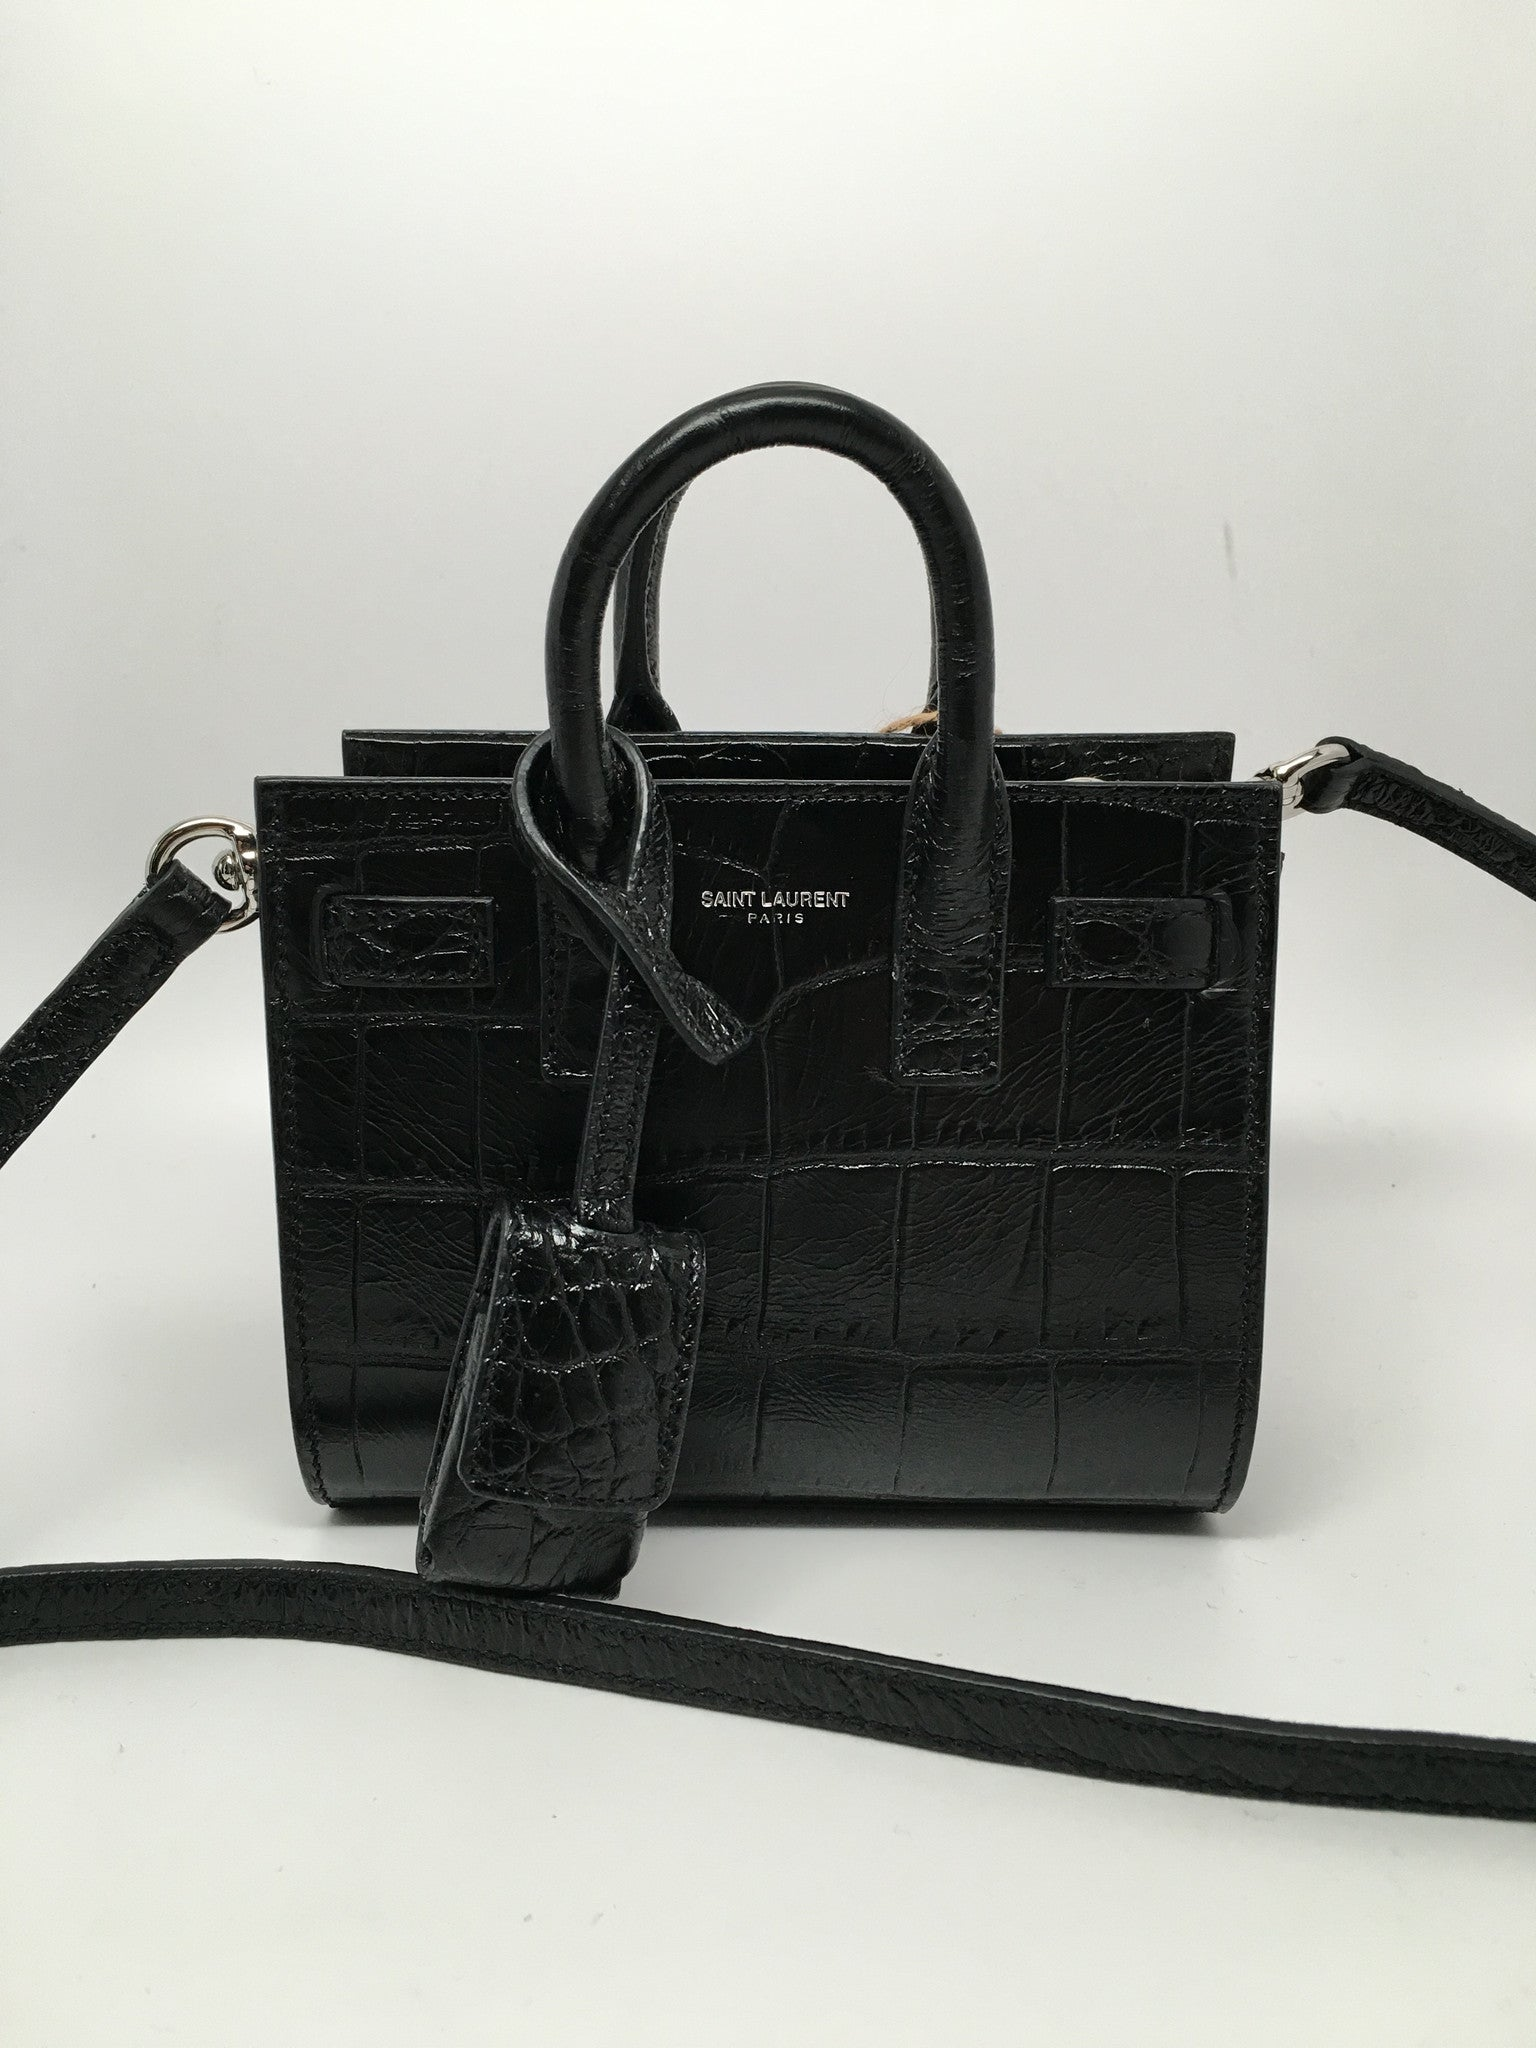 SAINT LAURENT CLASSIC SAC DU JOUR TOY CROCODILE EMBOSSED LEATHER CROSSBODY